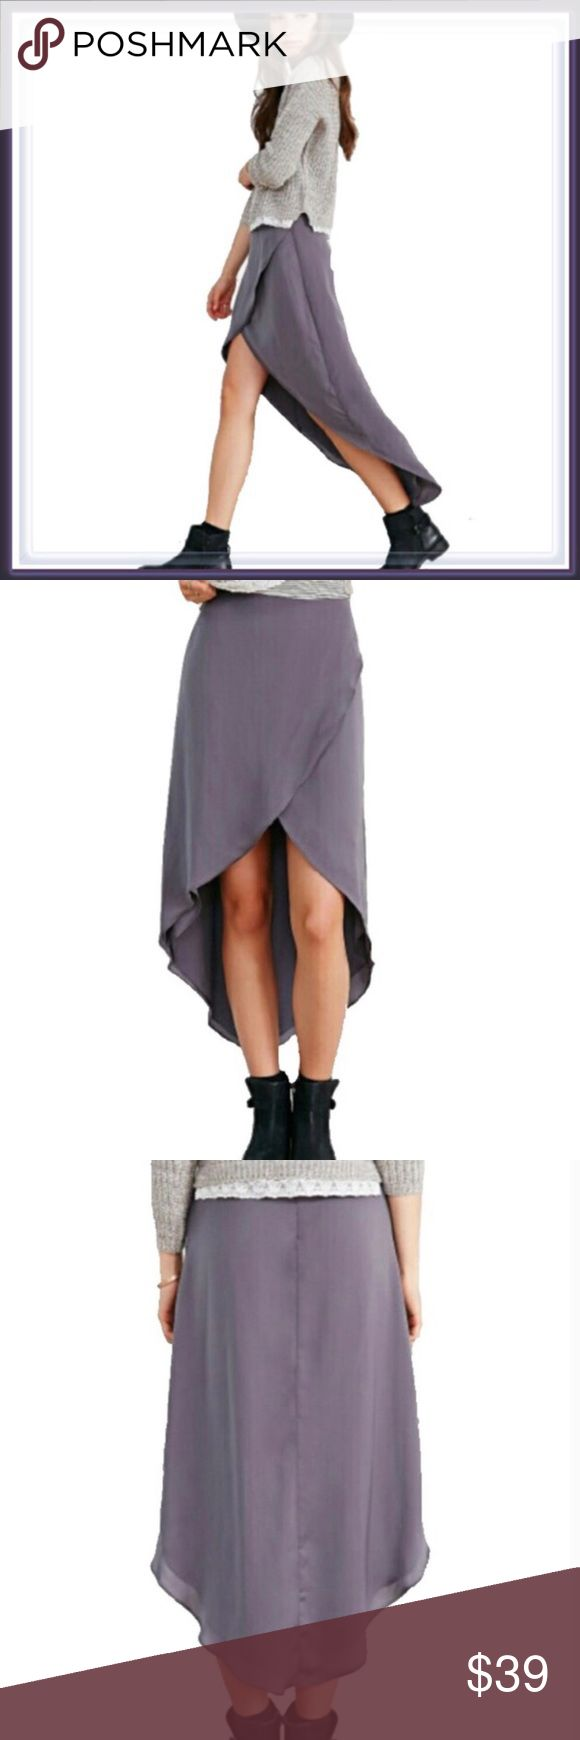 "Urban Outfitters Asymmetrical Tulip Midi Skirt ➖BRAND: Urban Outfitters  ➖SIZE: Medium- no stretch    ➖LENGTH: longest is 36"" at the back and the shortest at the front is 17"" and the skirt tapers from there to the back. ➖WAIST: 15"" ➖HIPS: 18-19""  ➖STYLE: A mauve purple tulip style asymmetrical high low Midi skirt ❌NO TRADE Urban Outfitters Skirts Asymmetrical"